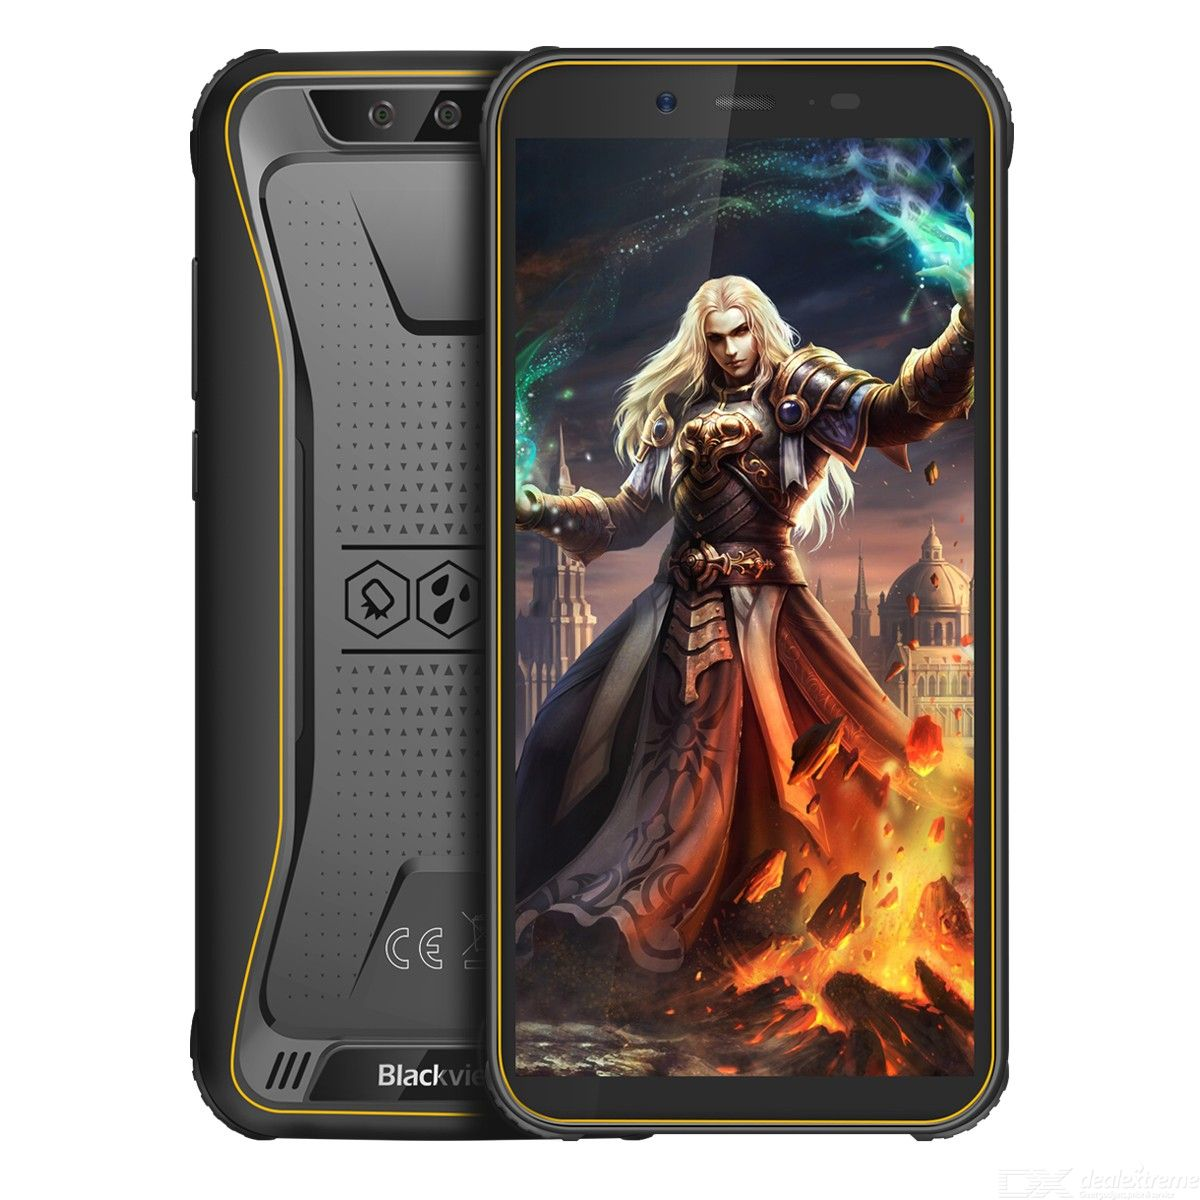 Blackview BV5500 Pro 5.5 inch Android 9.0 4G Cell Phone 3G + 16G 1.5GHz Quad-Core HD Smartphone - EU Version